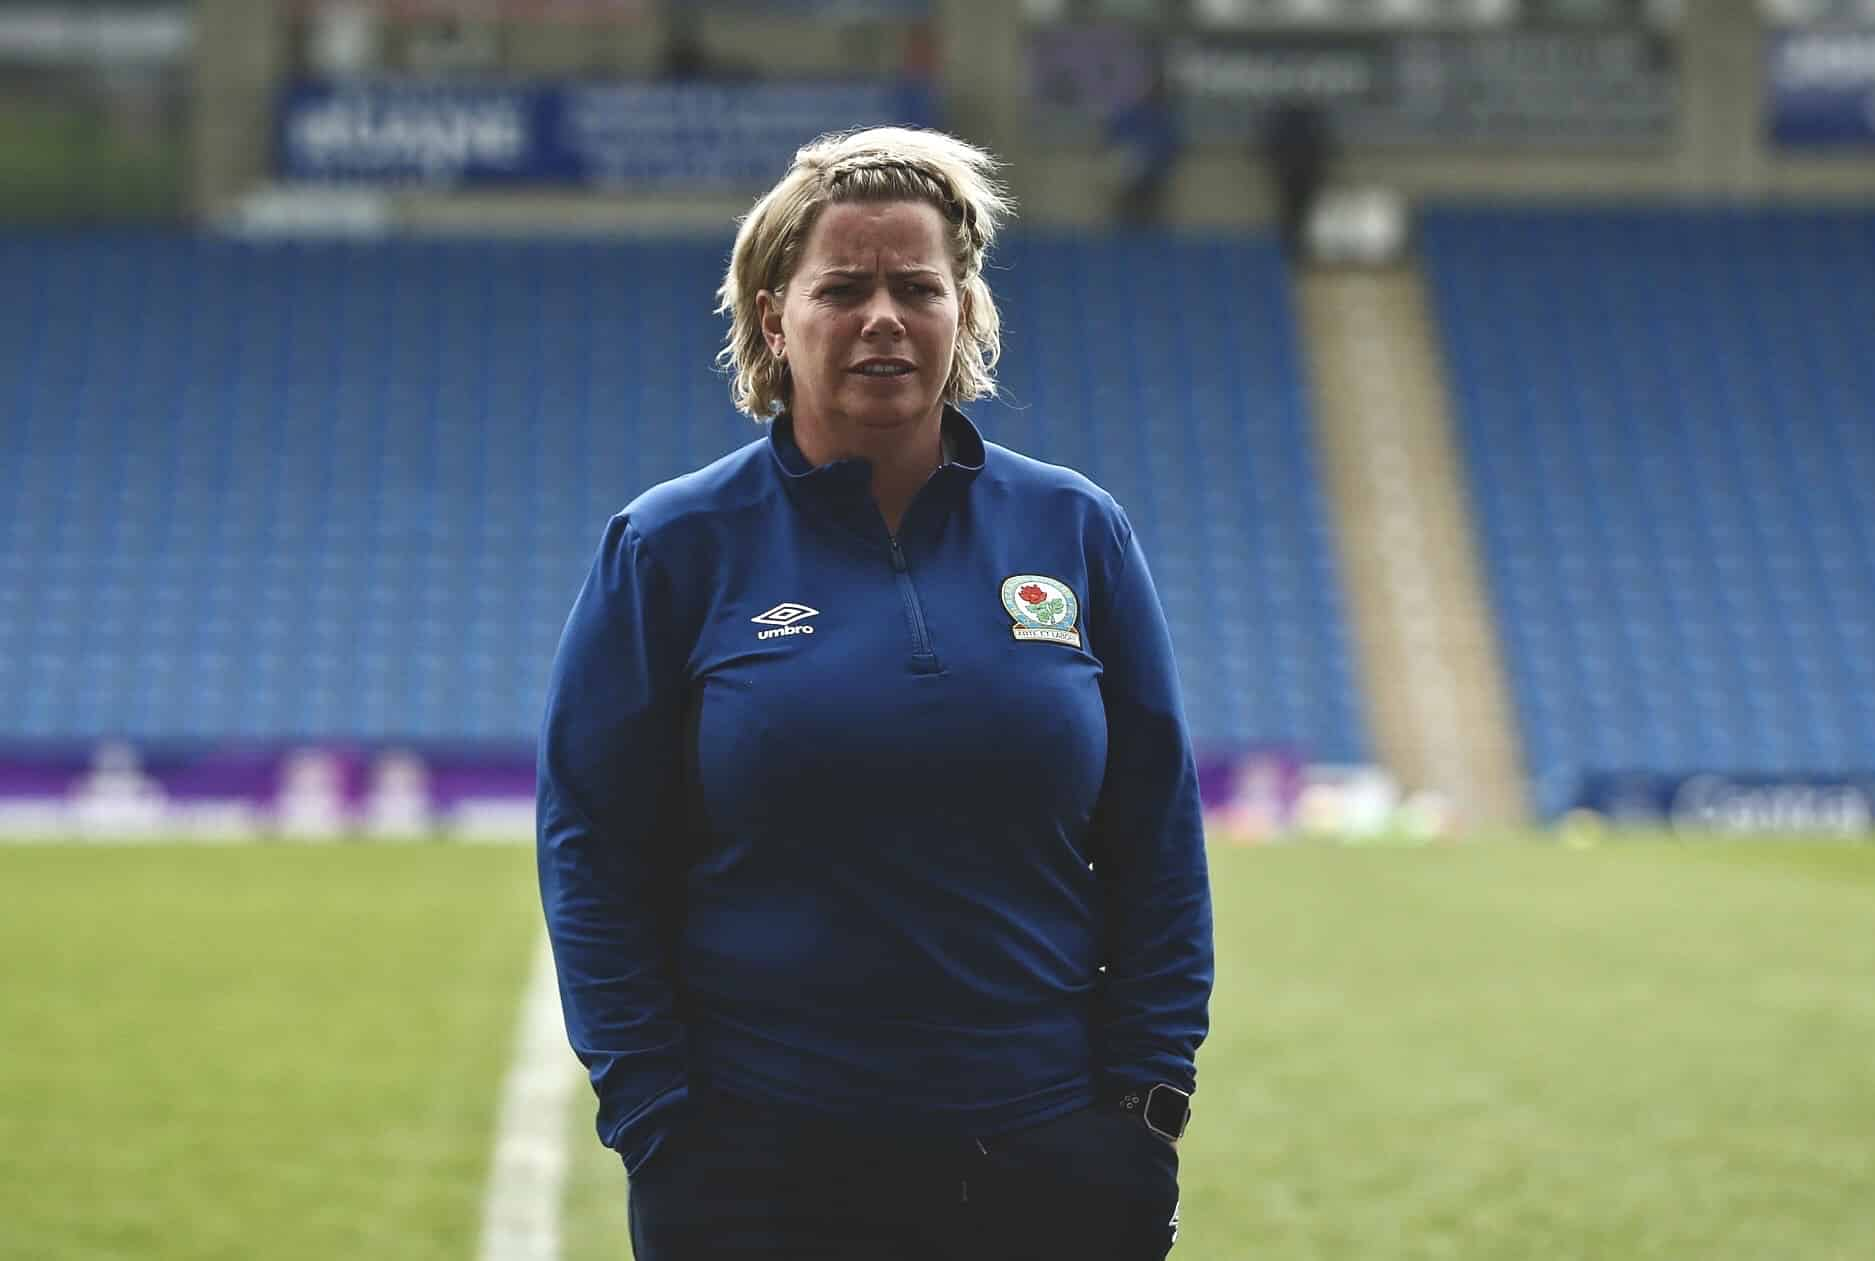 Blackburn Rovers manager, Gemma Donnelly.